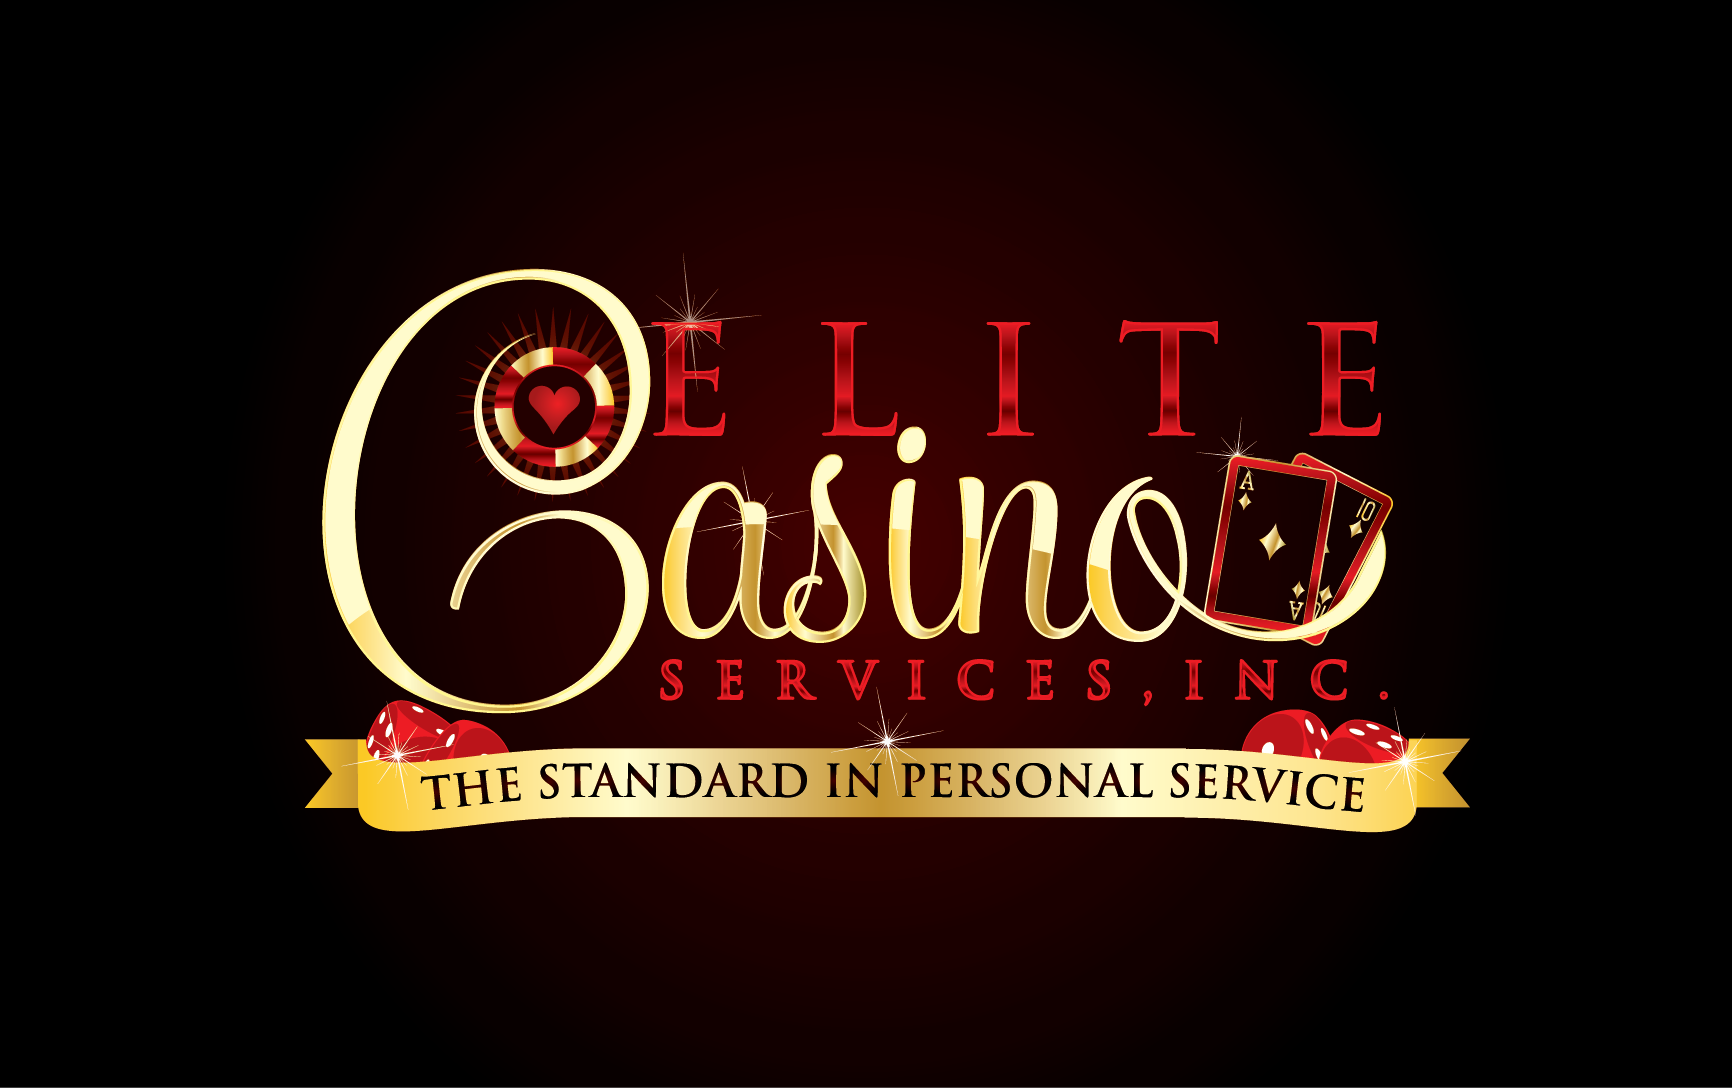 Gamble with your creative genius! We need a logo! Elite Casino Services, Inc.